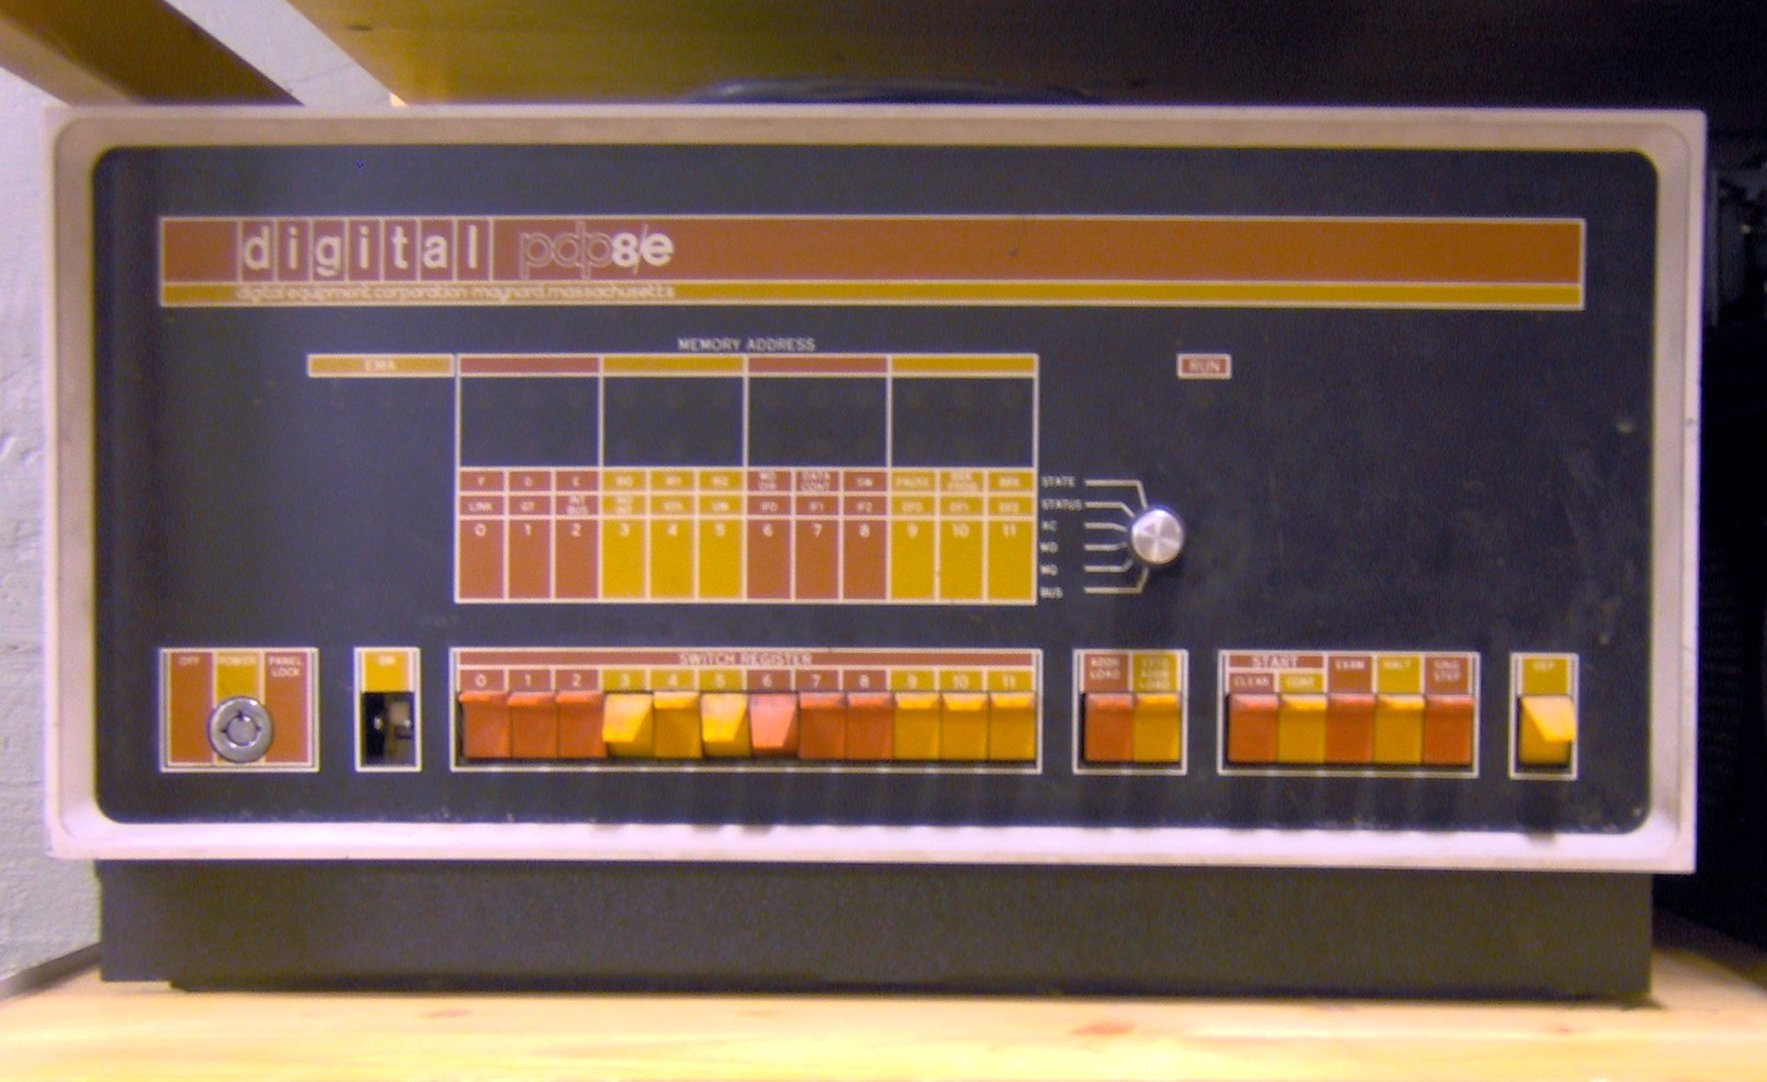 A picture of a PDP-8.